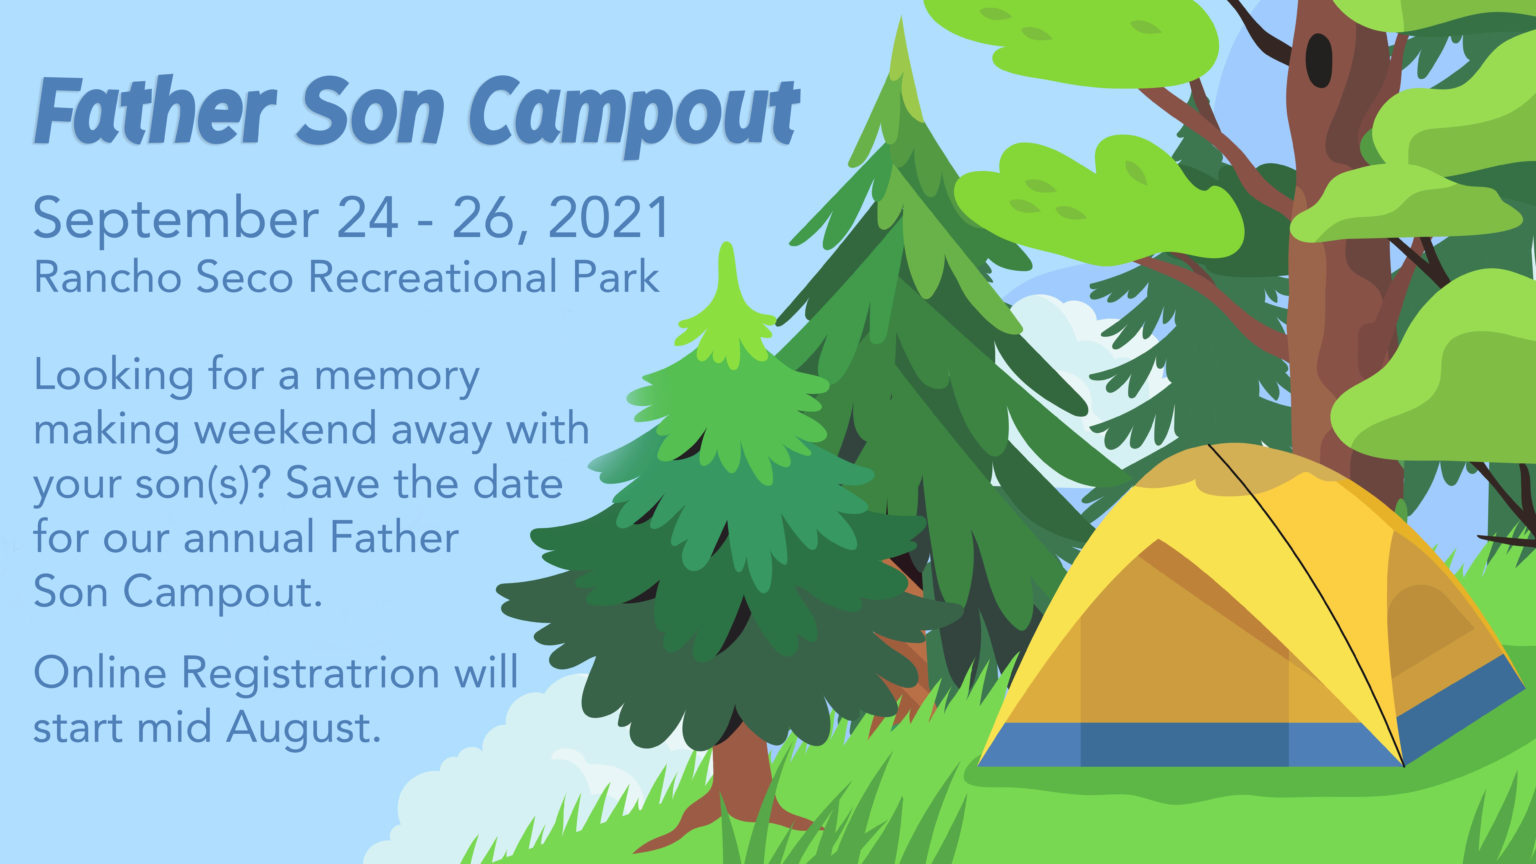 Vector landscape or panorama of a camping place in a forest or park. Outdoor adventure and nature eco tourism concept illustration for banners, flyers, landing page design. Campsite in woods scenery.